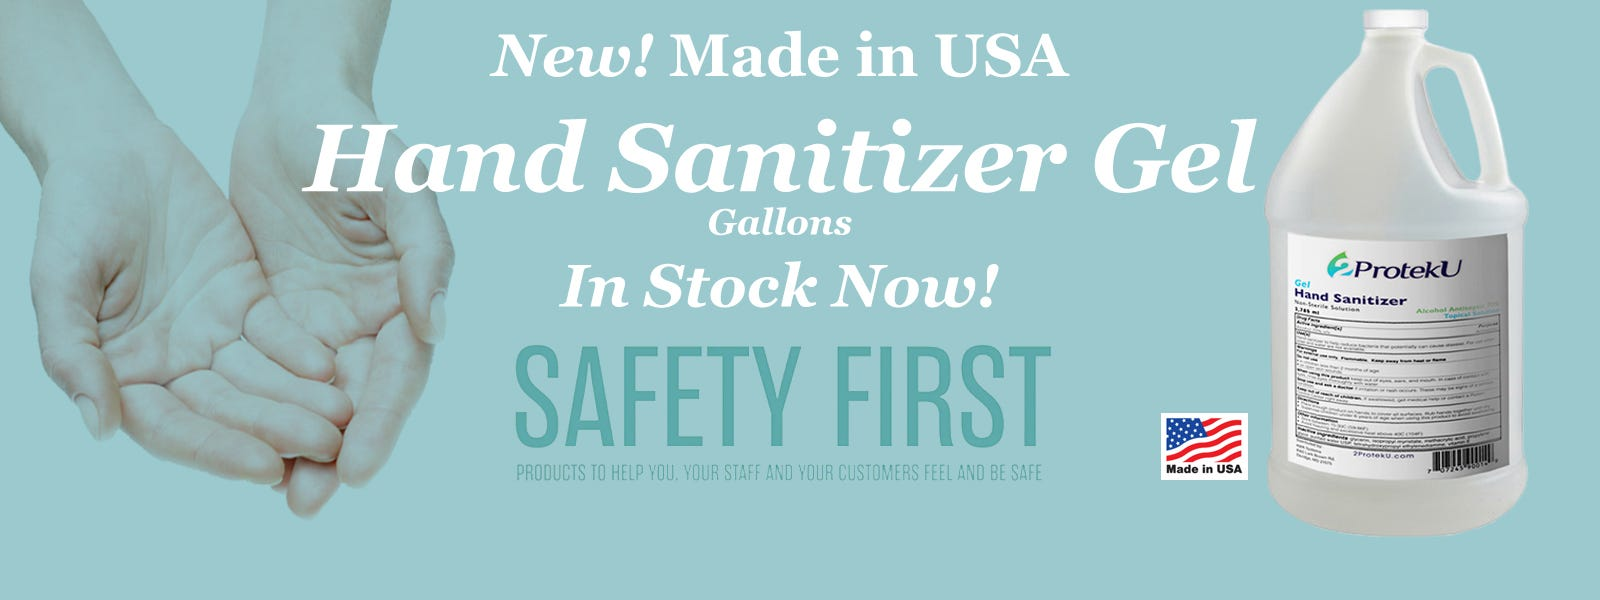 New 2ProtekU Hand Sanitizer Gel Gallons!